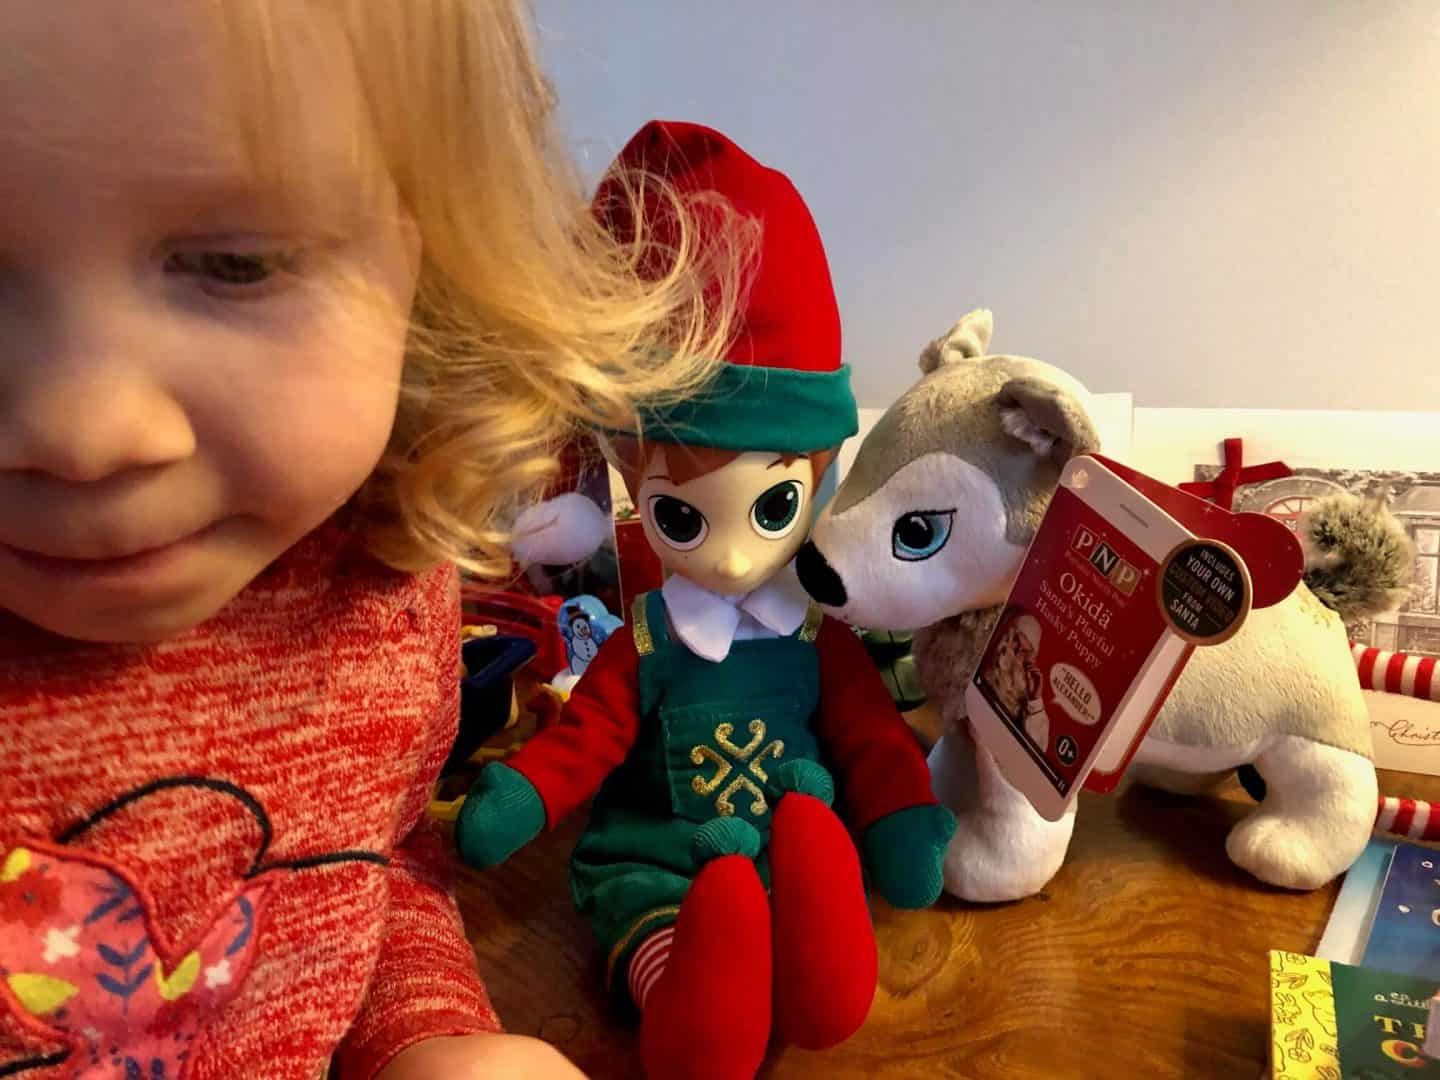 Video Calling Santa Claus with Portable North Pole (PNP) - Elf and Husky toys